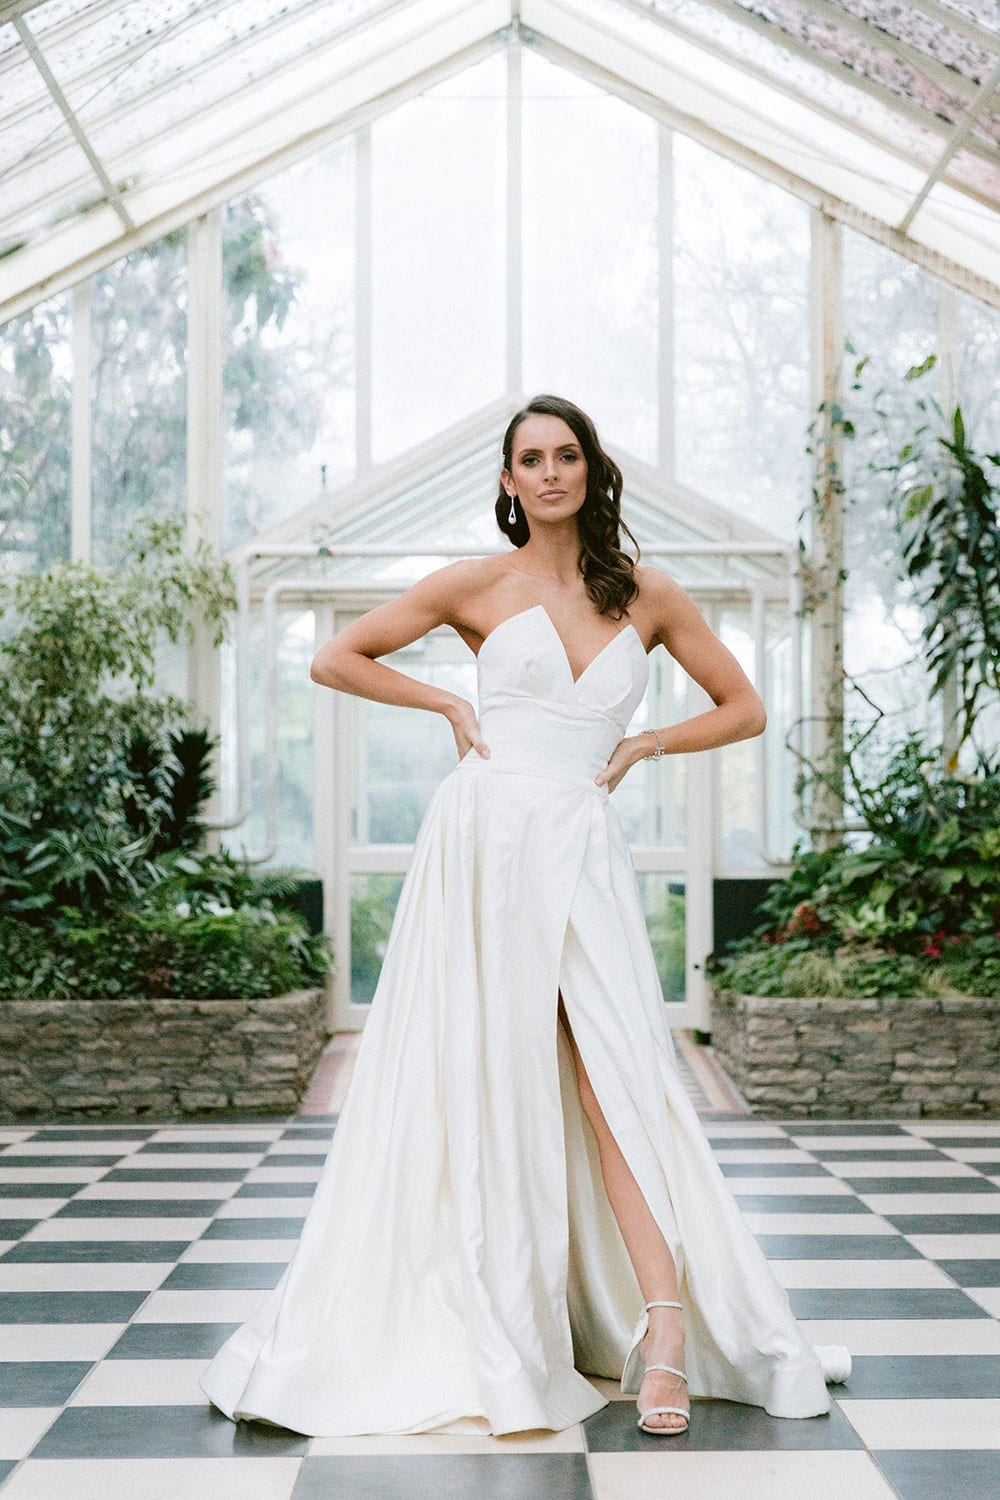 Model wearing Vinka Design Germaine Wedding Dress, a strapless dramatic wedding dress with split in a botanical garden greenhouse